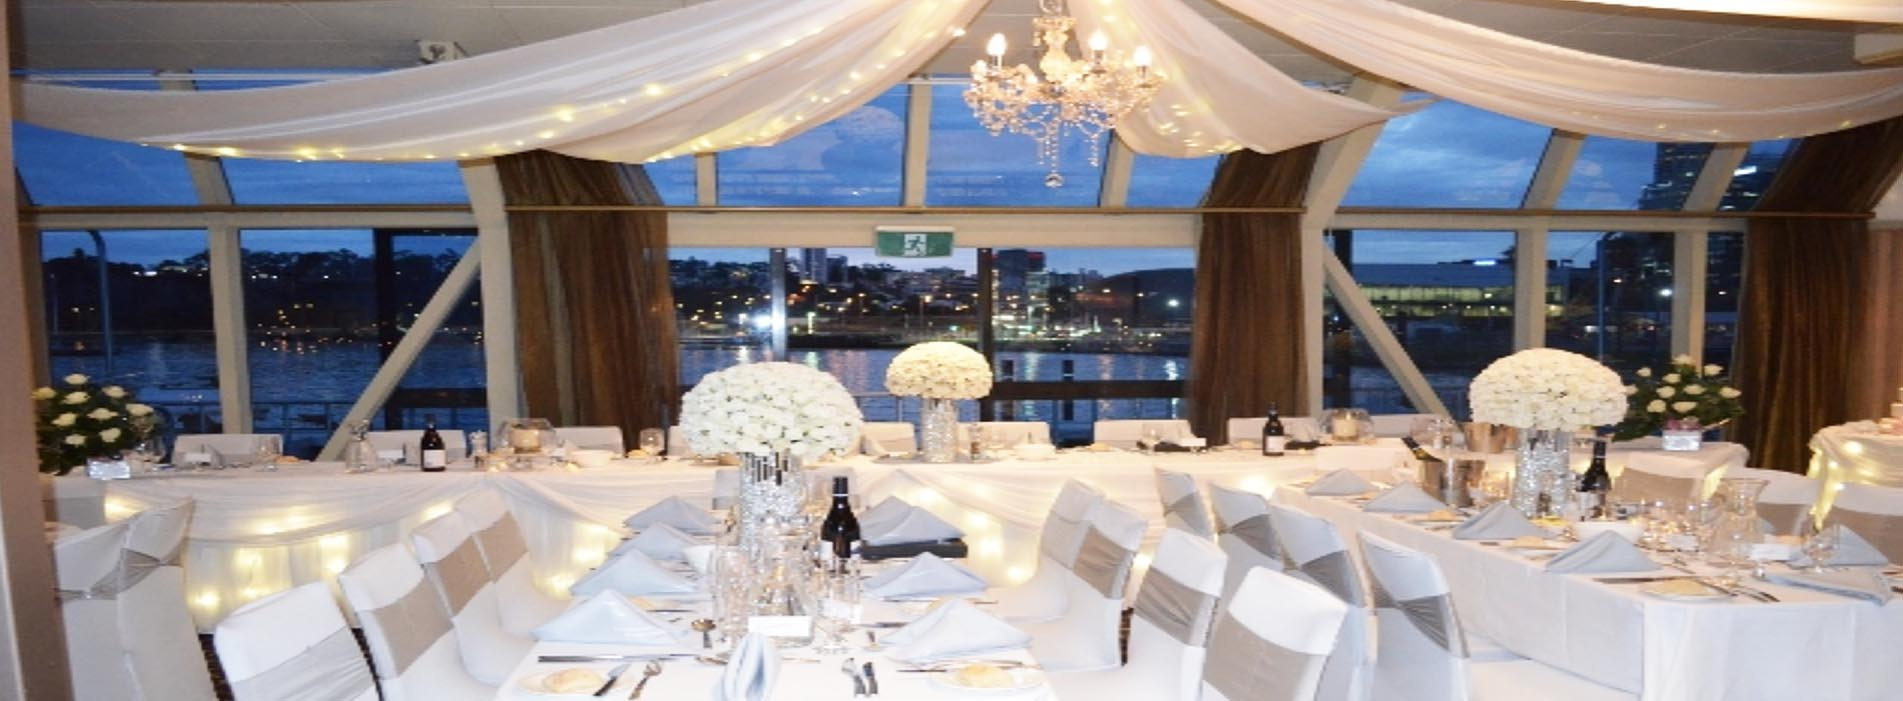 CRYSTAL SWAN WEDDING DECOR BOAT CHARTER